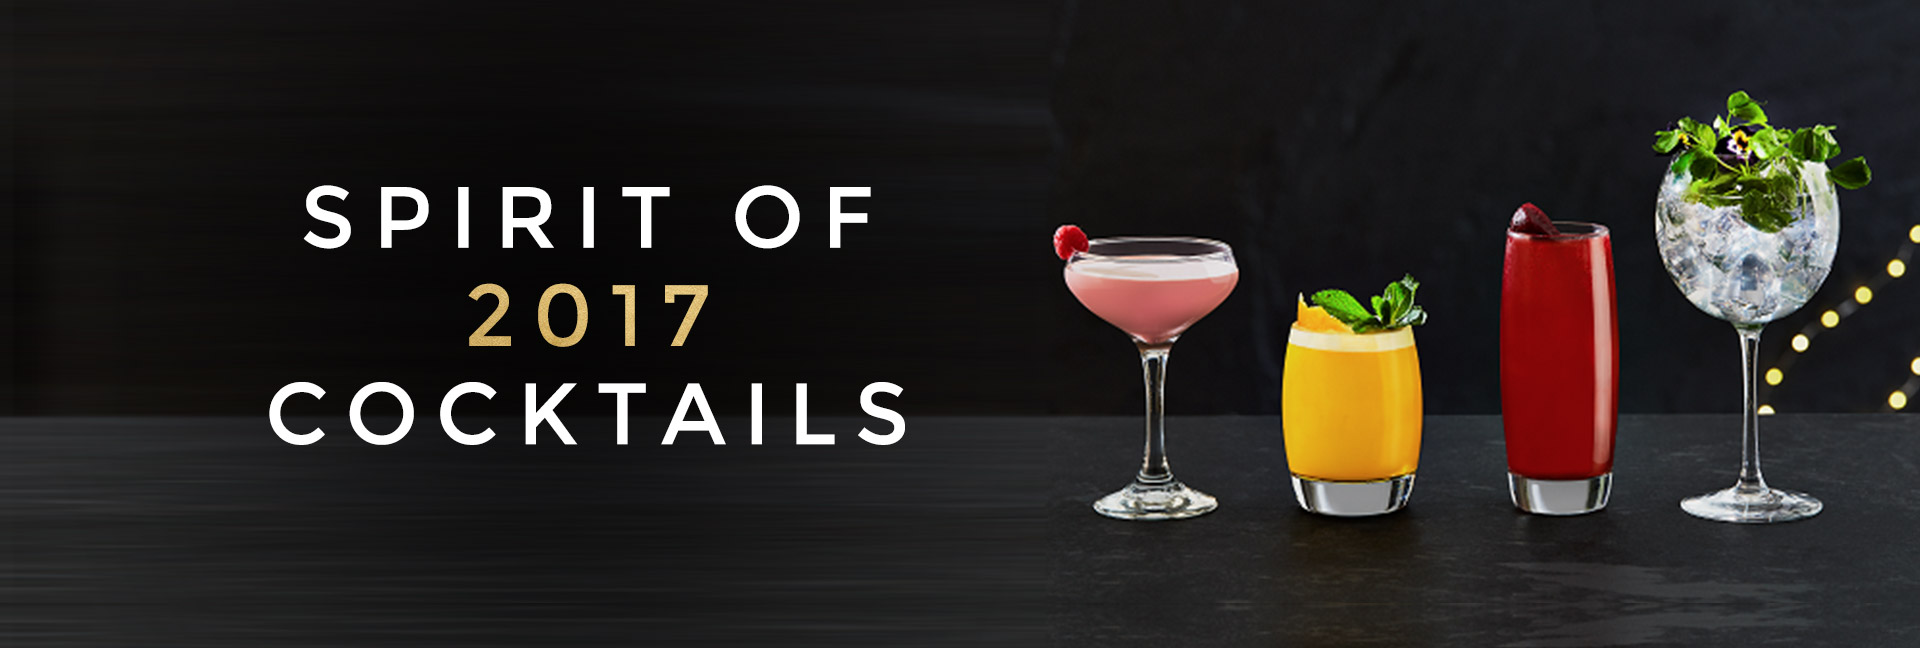 Spirit of 2017 cocktails at All Bar One Covent Garden